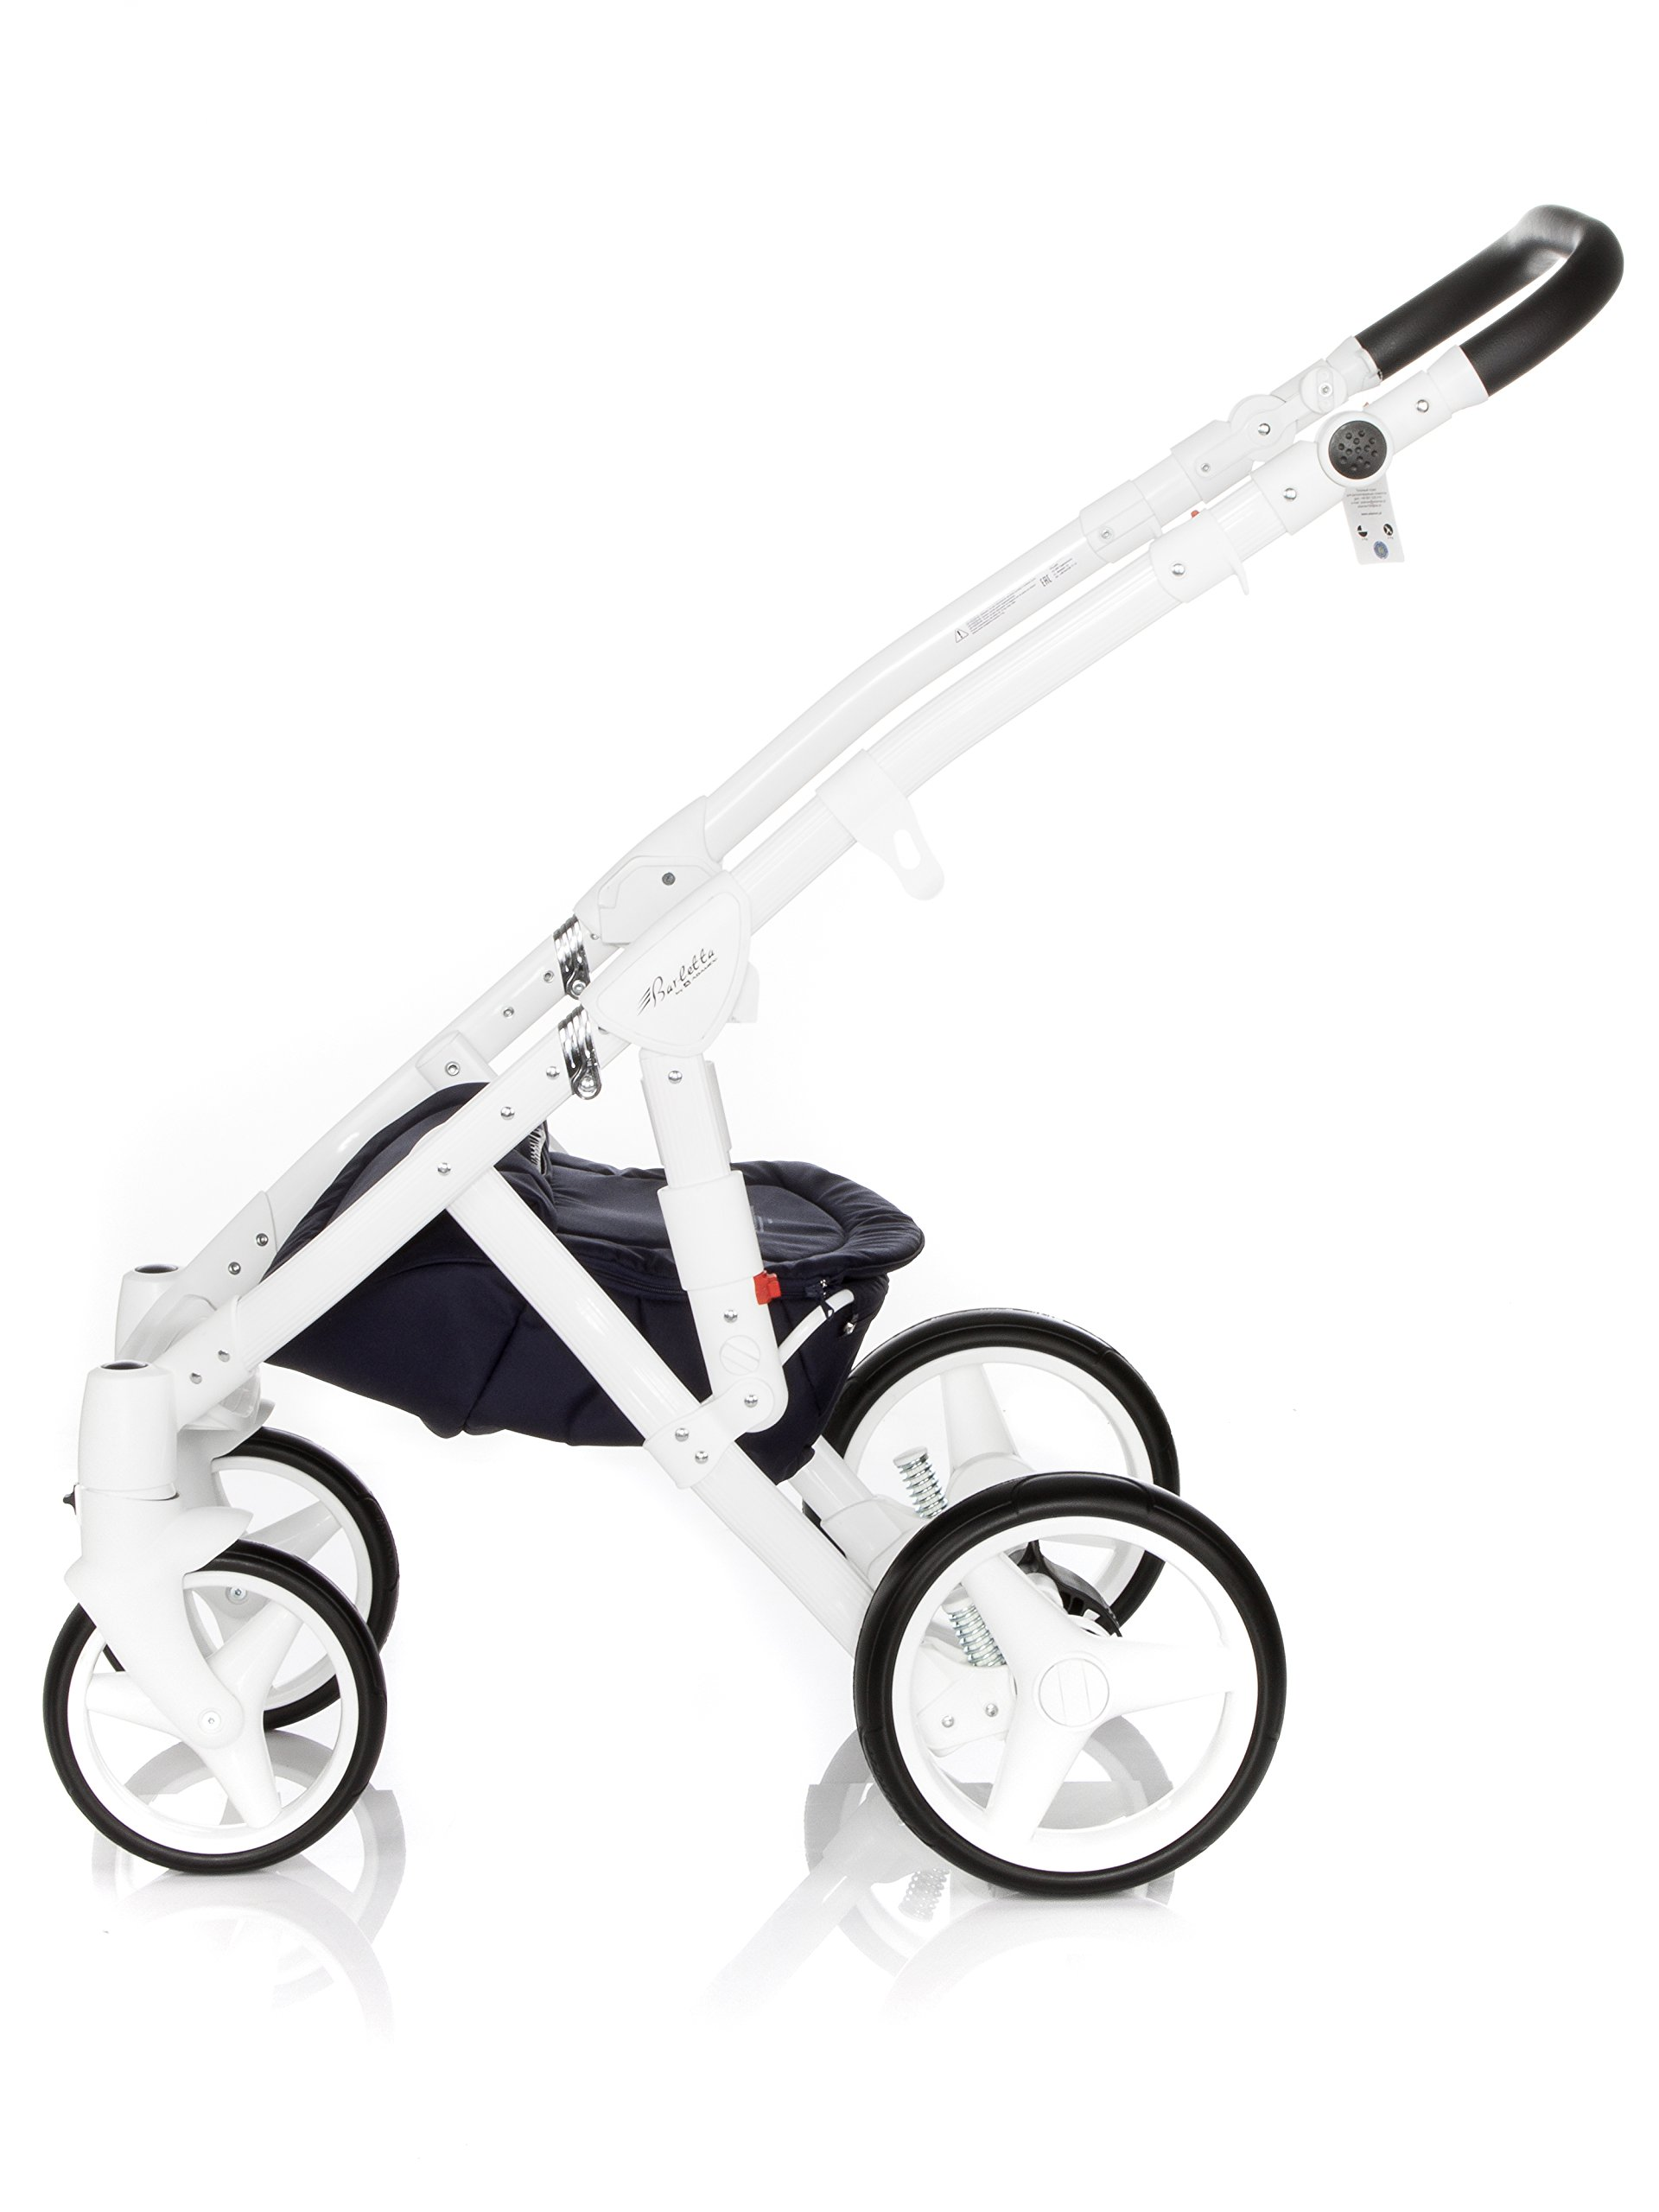 Baby Pram Pushchair Stroller Buggy, Travel System Adamex Barletta New B7 Fox-Navy-White 2in1 + ADAPTORS for CAR Seats: Maxi-COSI CYBEX KIDDY Be Safe Adamex Lockable swivel wheels and lockable side suspension system Light alluminium chassis with polyurethane wheels 2 separate modules + car seats adapters - big and deep baby tub functional sport seat and car seats adapters that can be attached to the following car seats: Maxi-Cosi: City, Cabrio fix, Pebble Cybex: Aton Kiddy: Evoluna i-Size, Evolution Pro 2 Be Safe: iZi Go 7